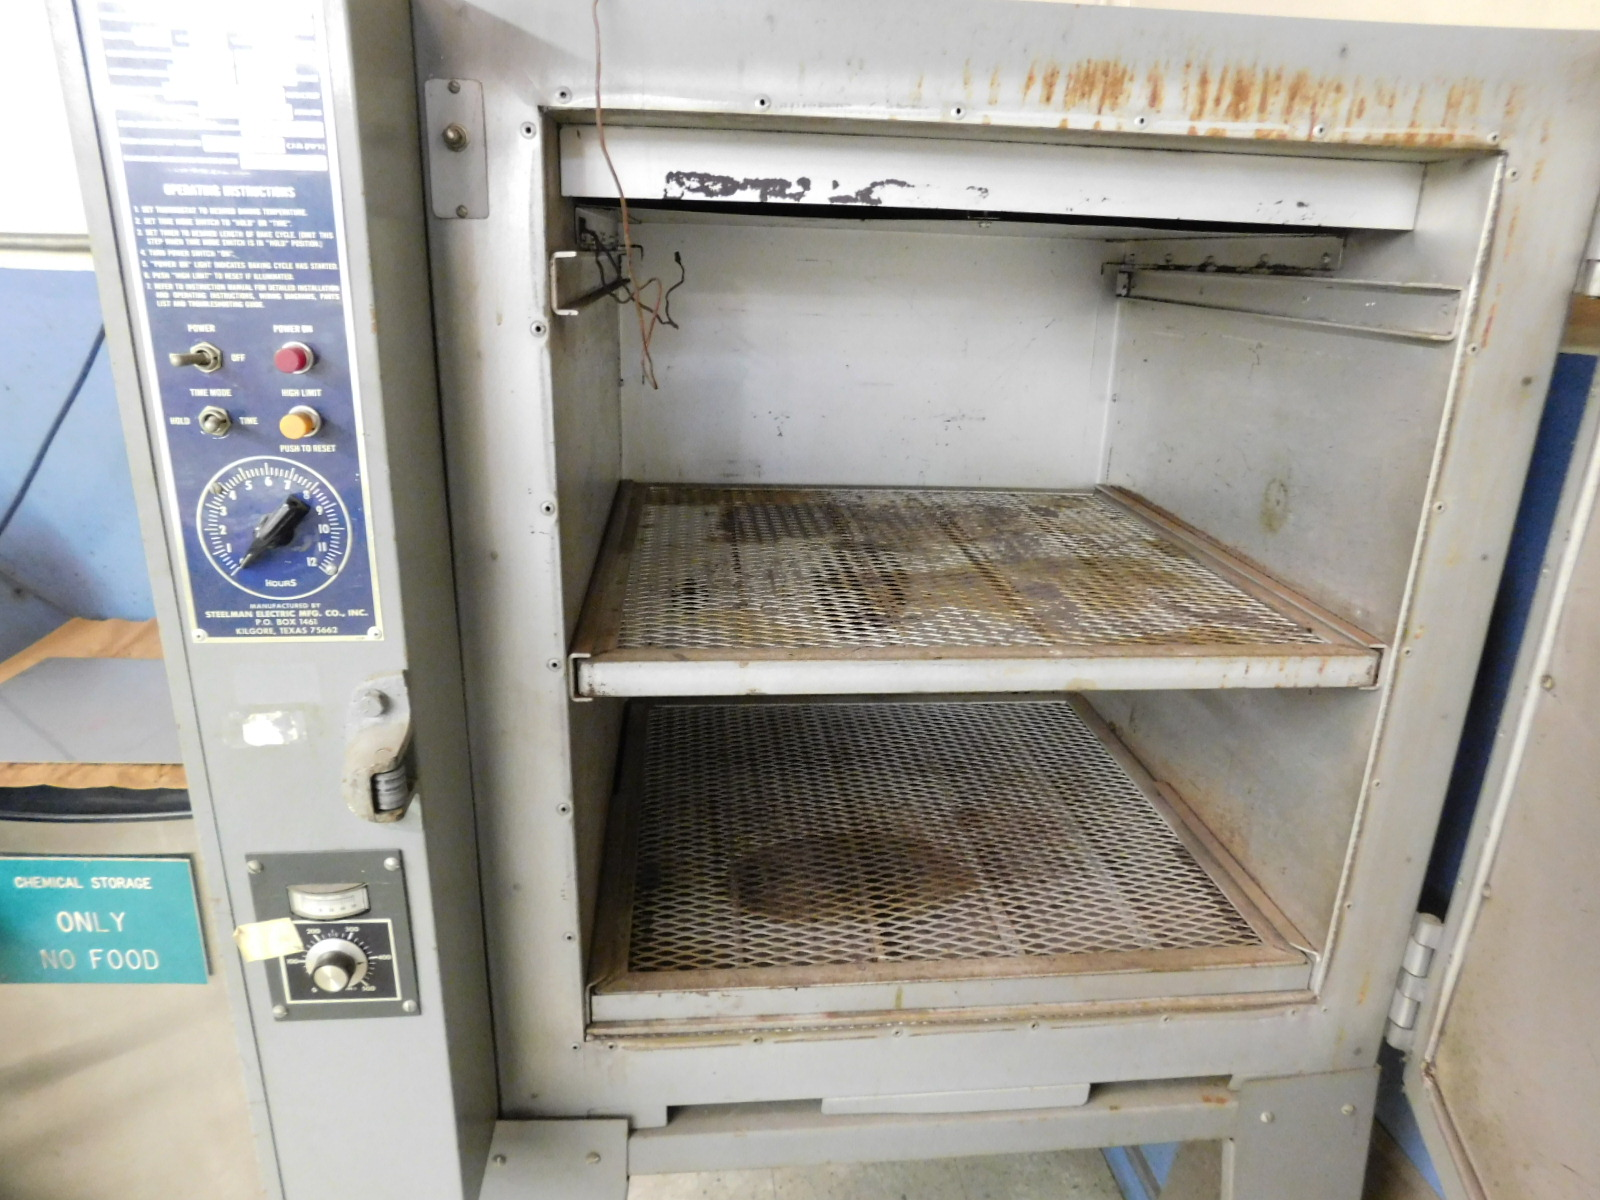 Lot 25 - STEELMAN BAKE OVEN, MODEL 222-EB, ELECTRIC, 500°F, S/N 84204